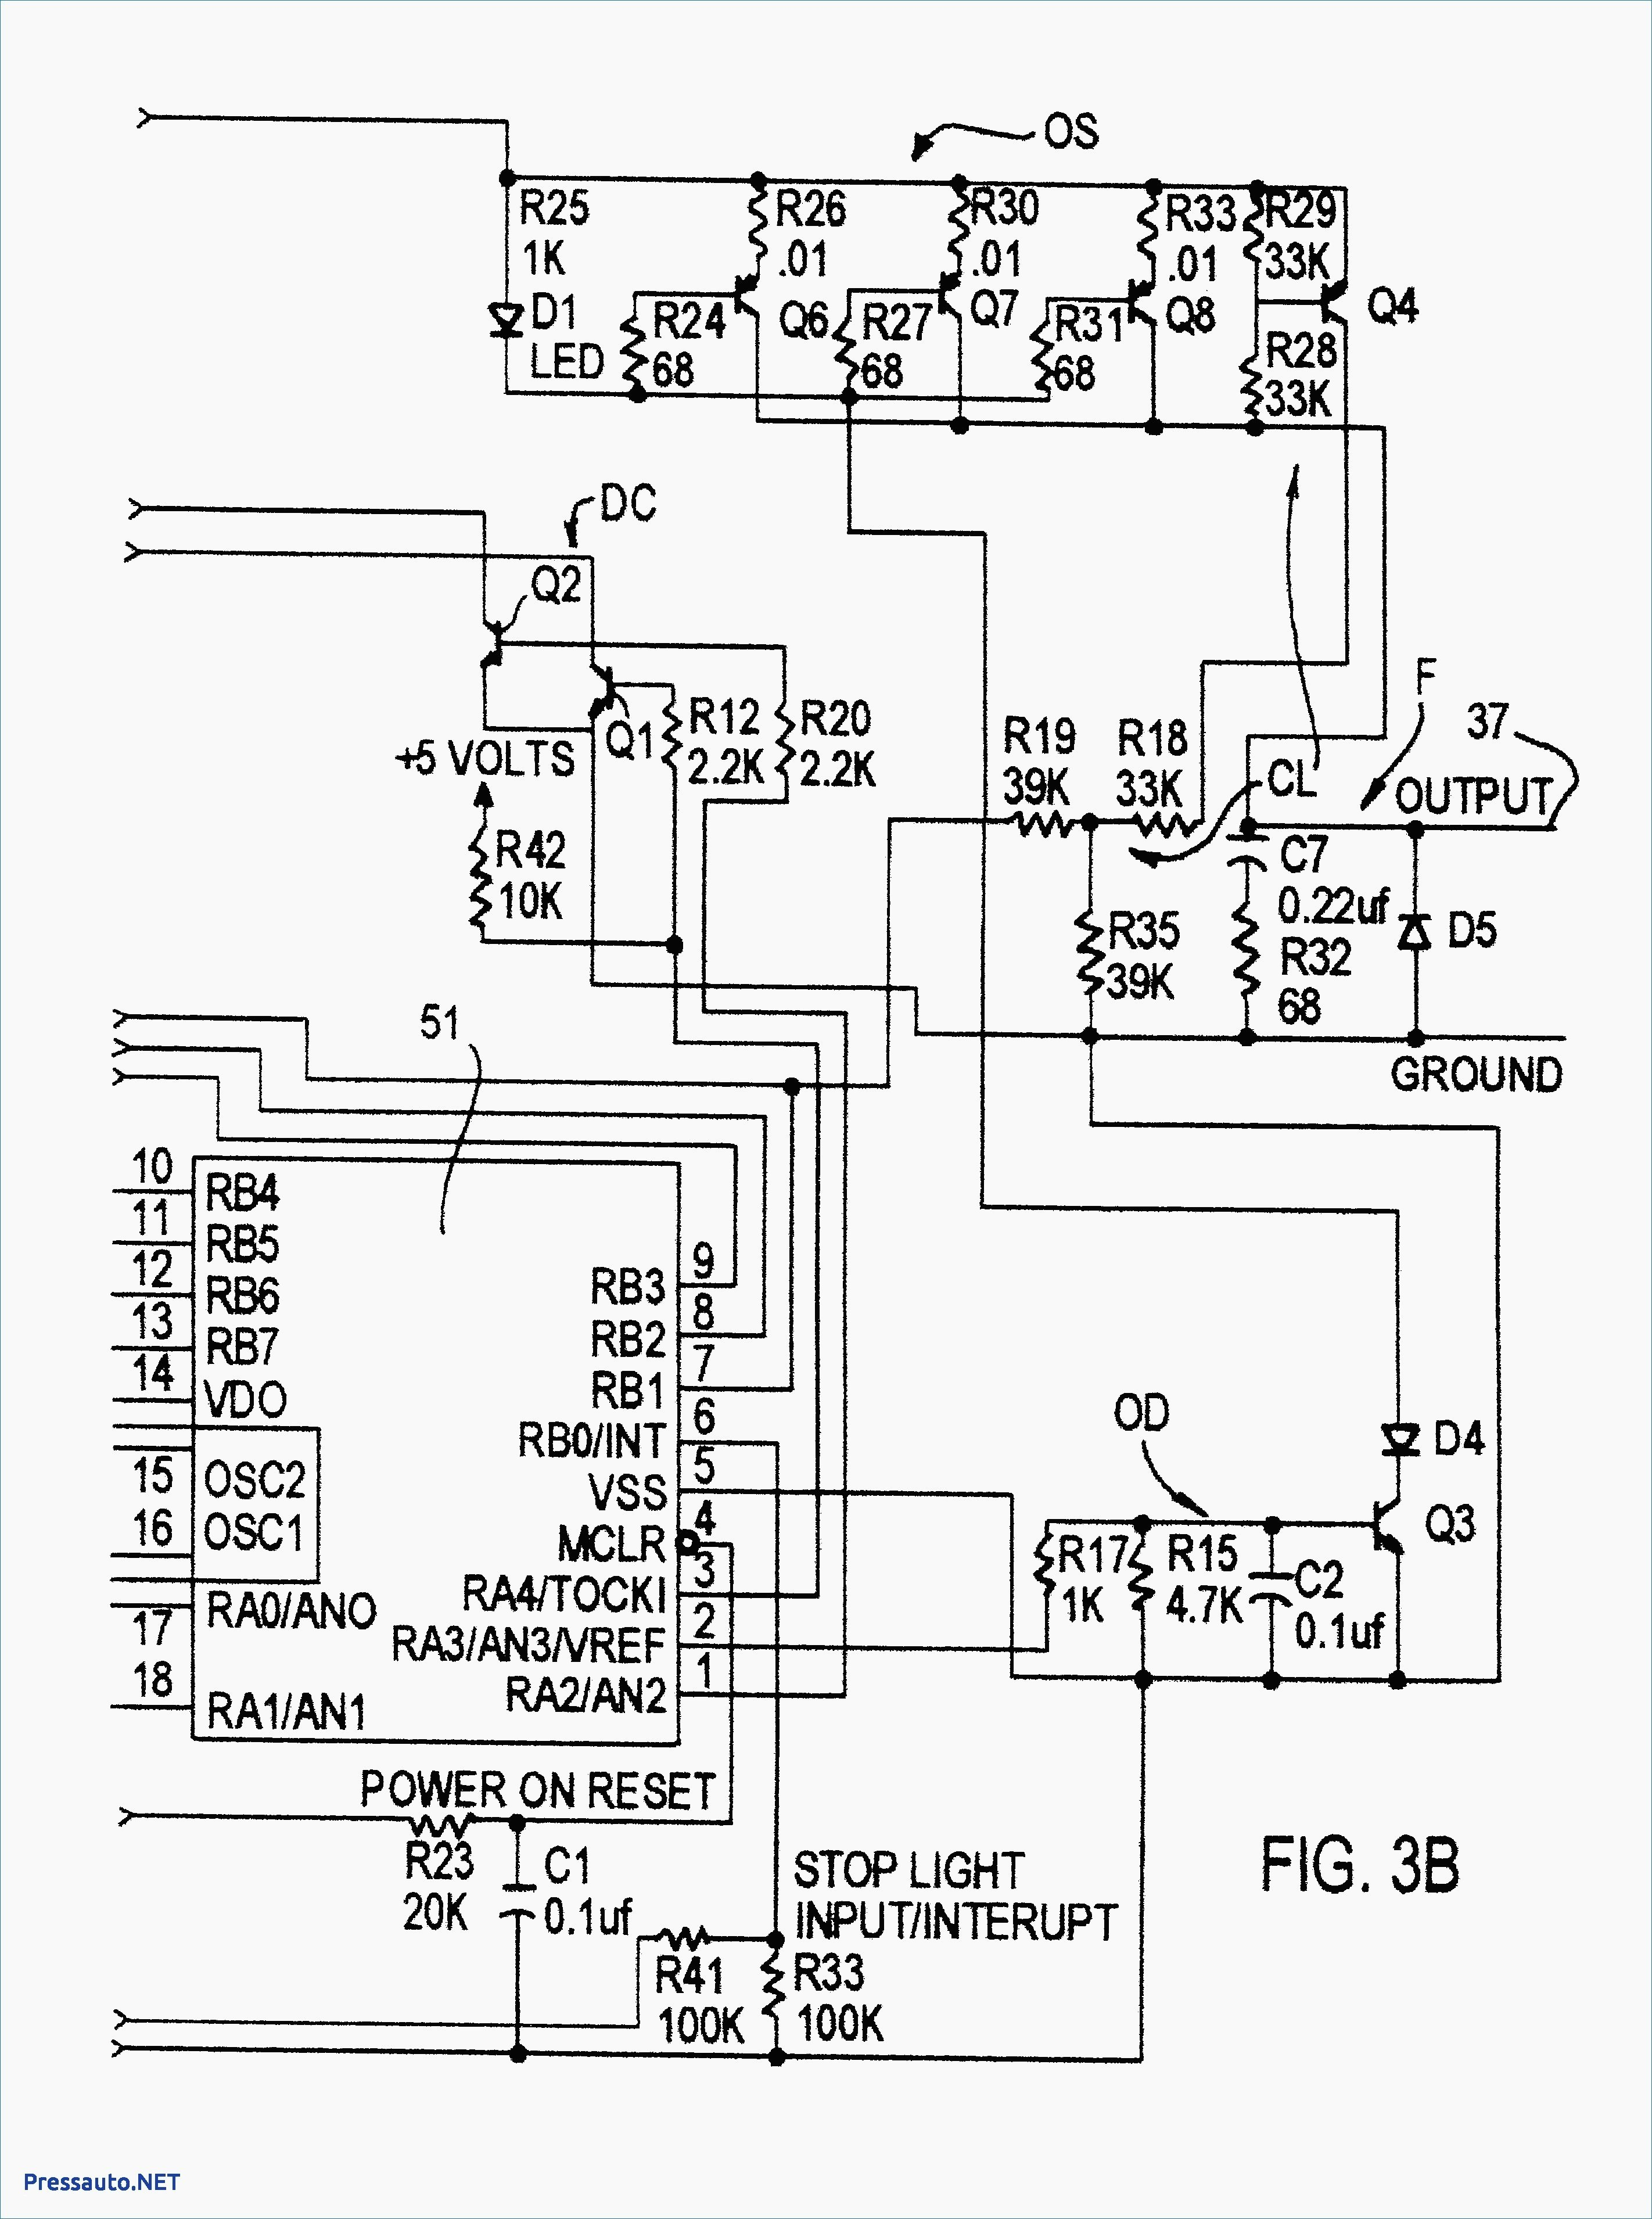 Wfco 8735 Wiring Diagram from mainetreasurechest.com